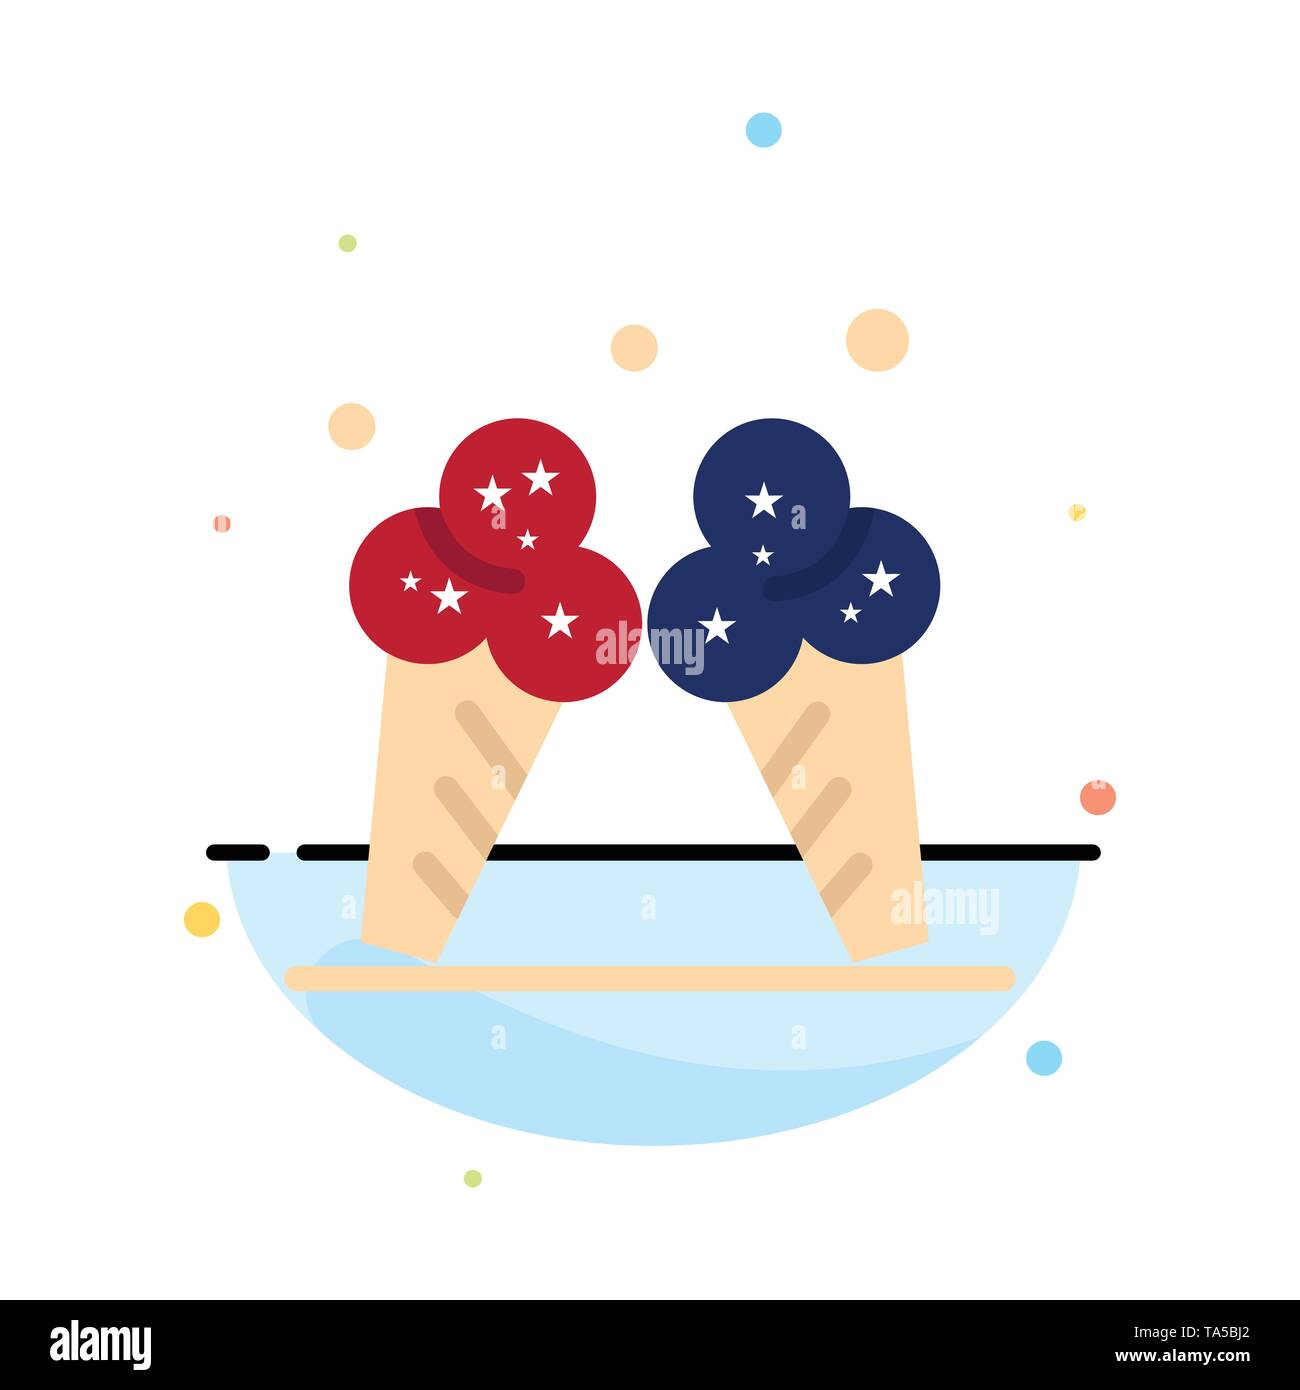 Ice cream, Ice, Cream, American Abstract Flat Color Icon Template - Stock Image